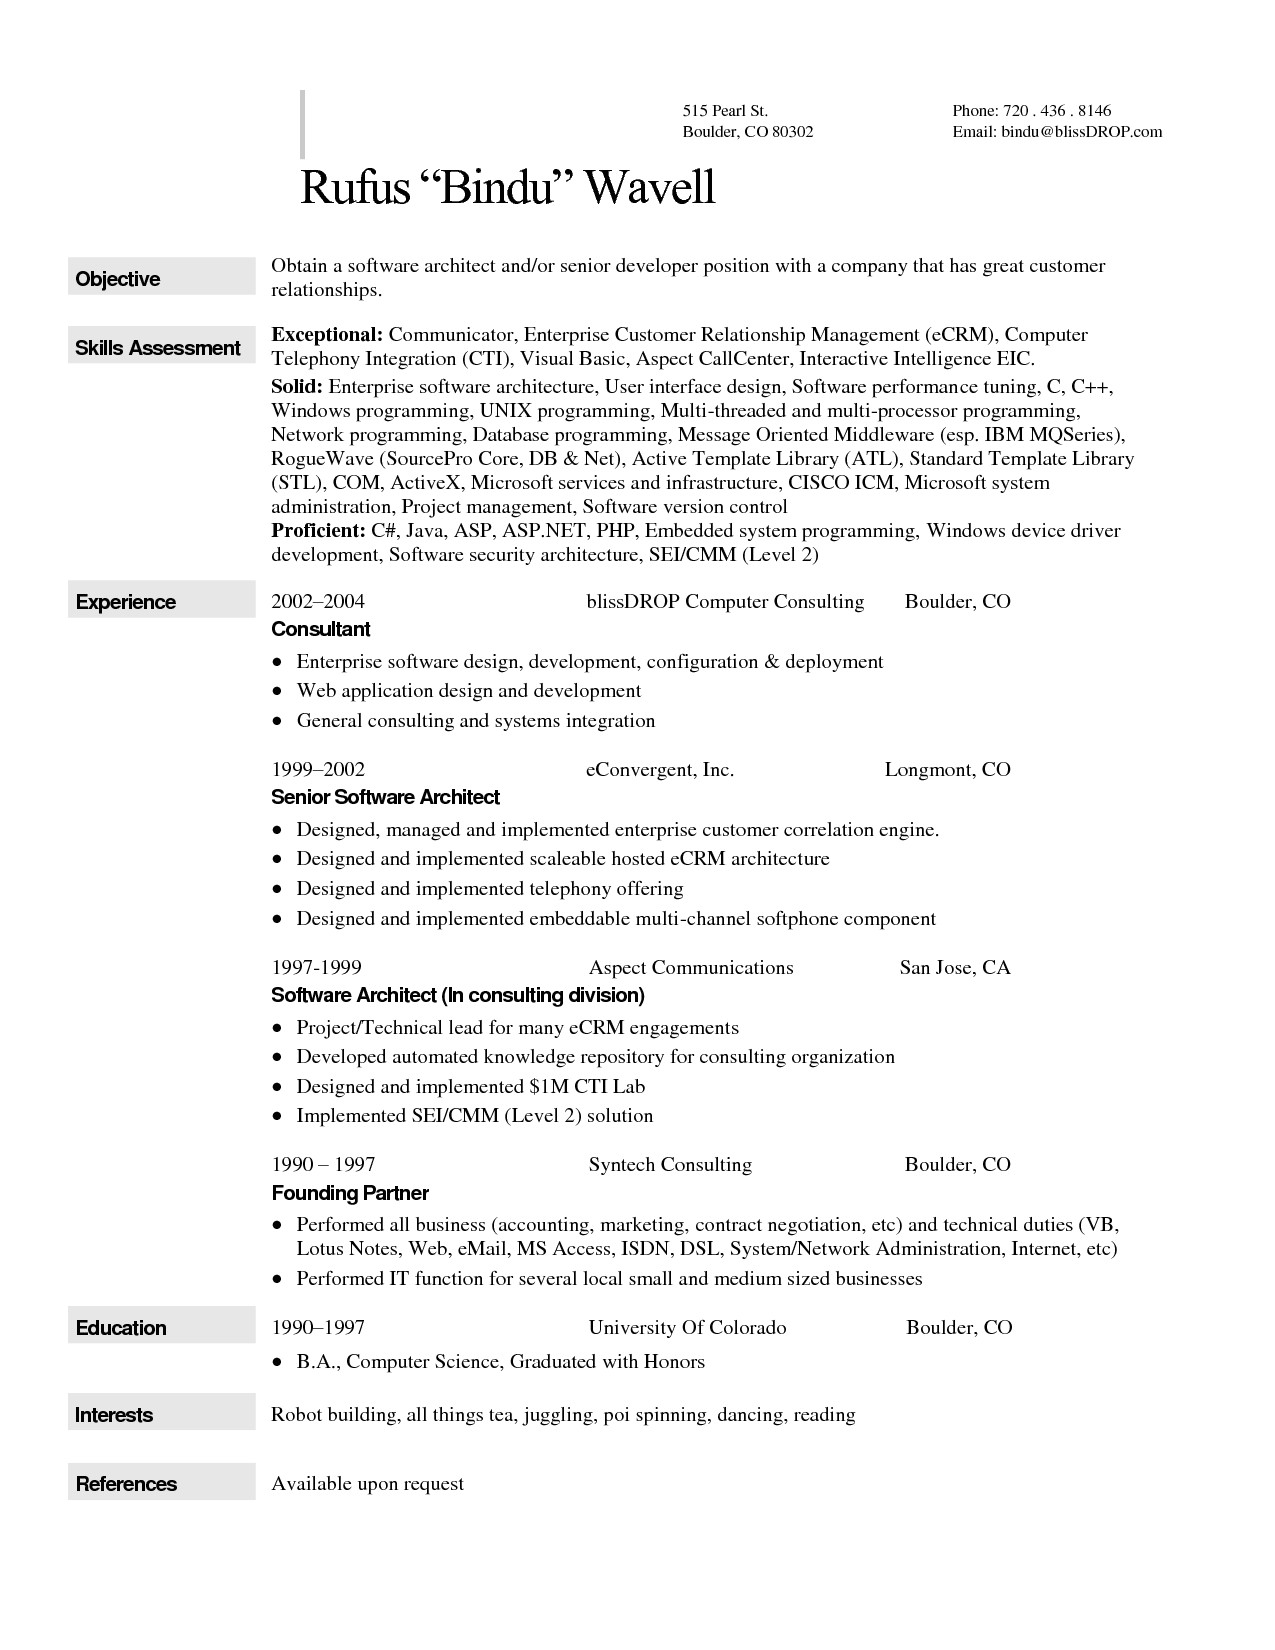 Sample Resume Objective for Call Center Agent Call Center Resume Template Resume Builder